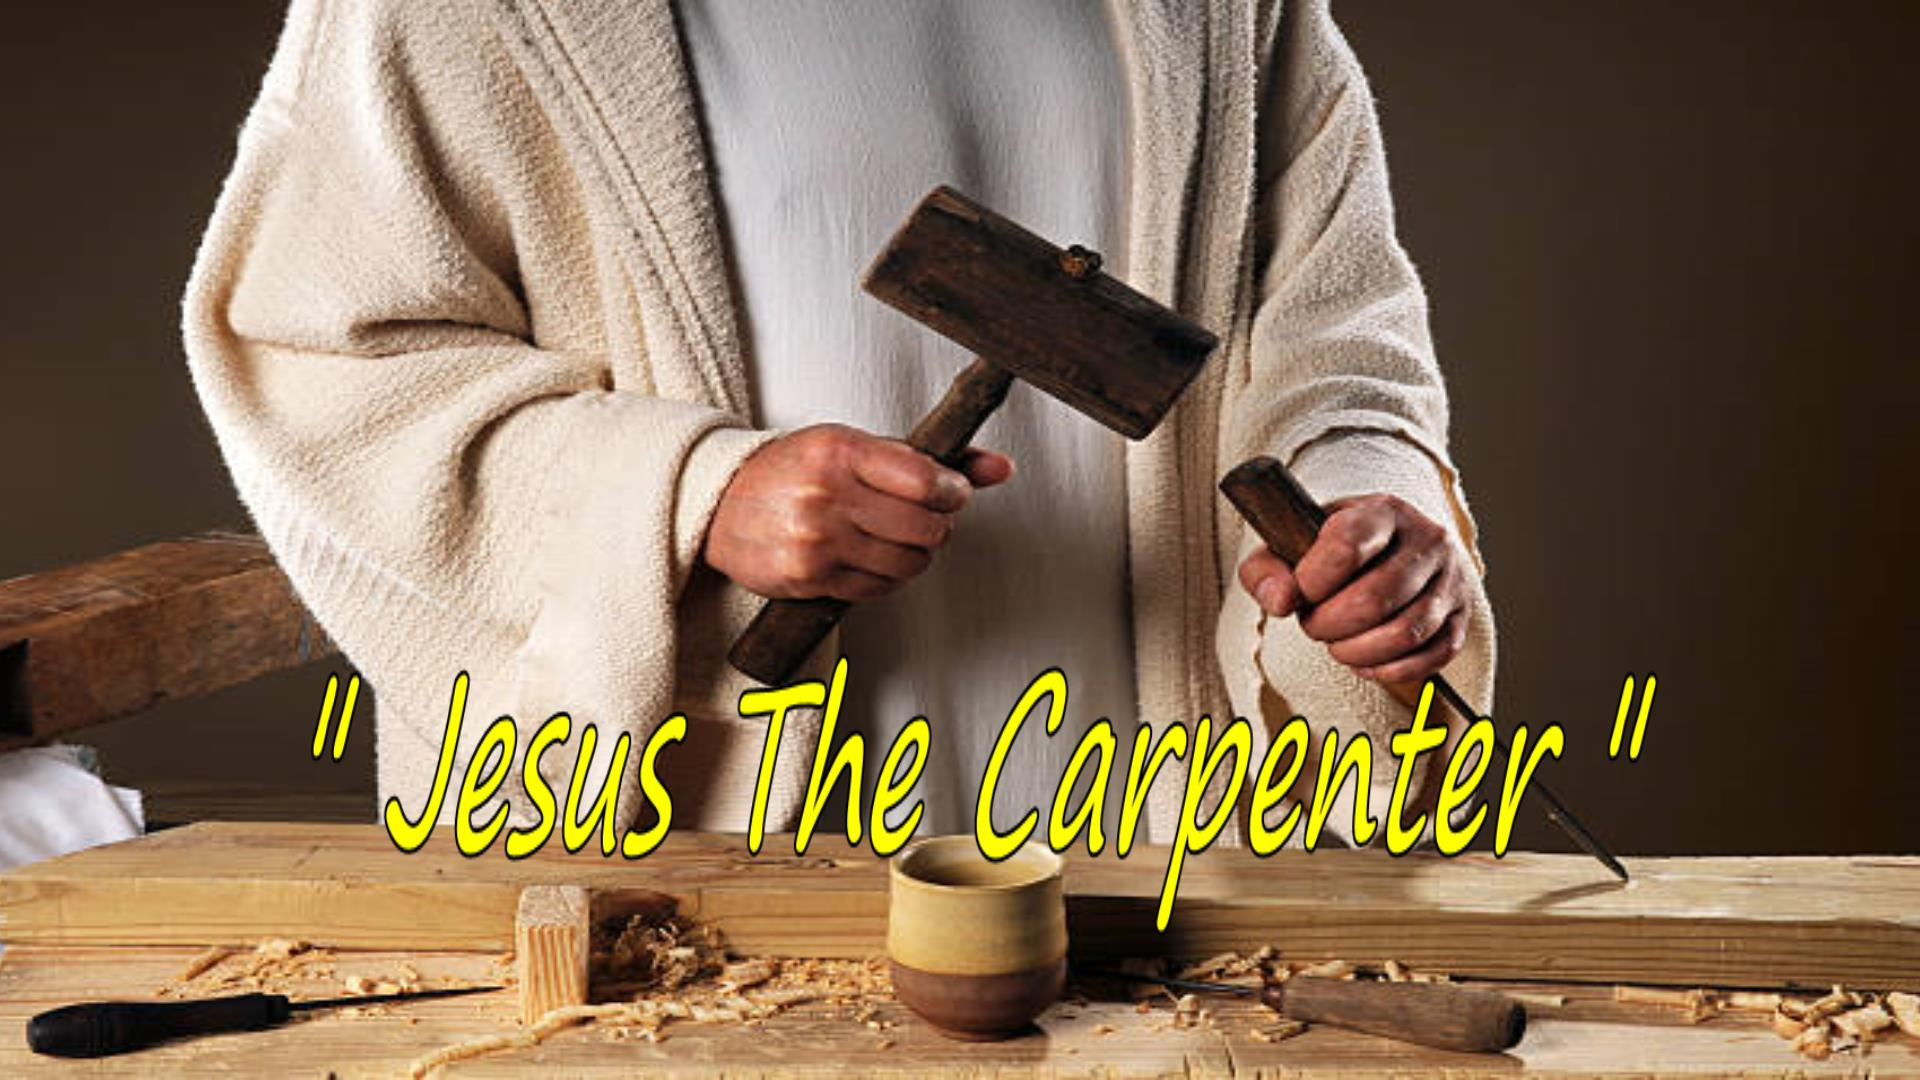 Jesus The Carpenter